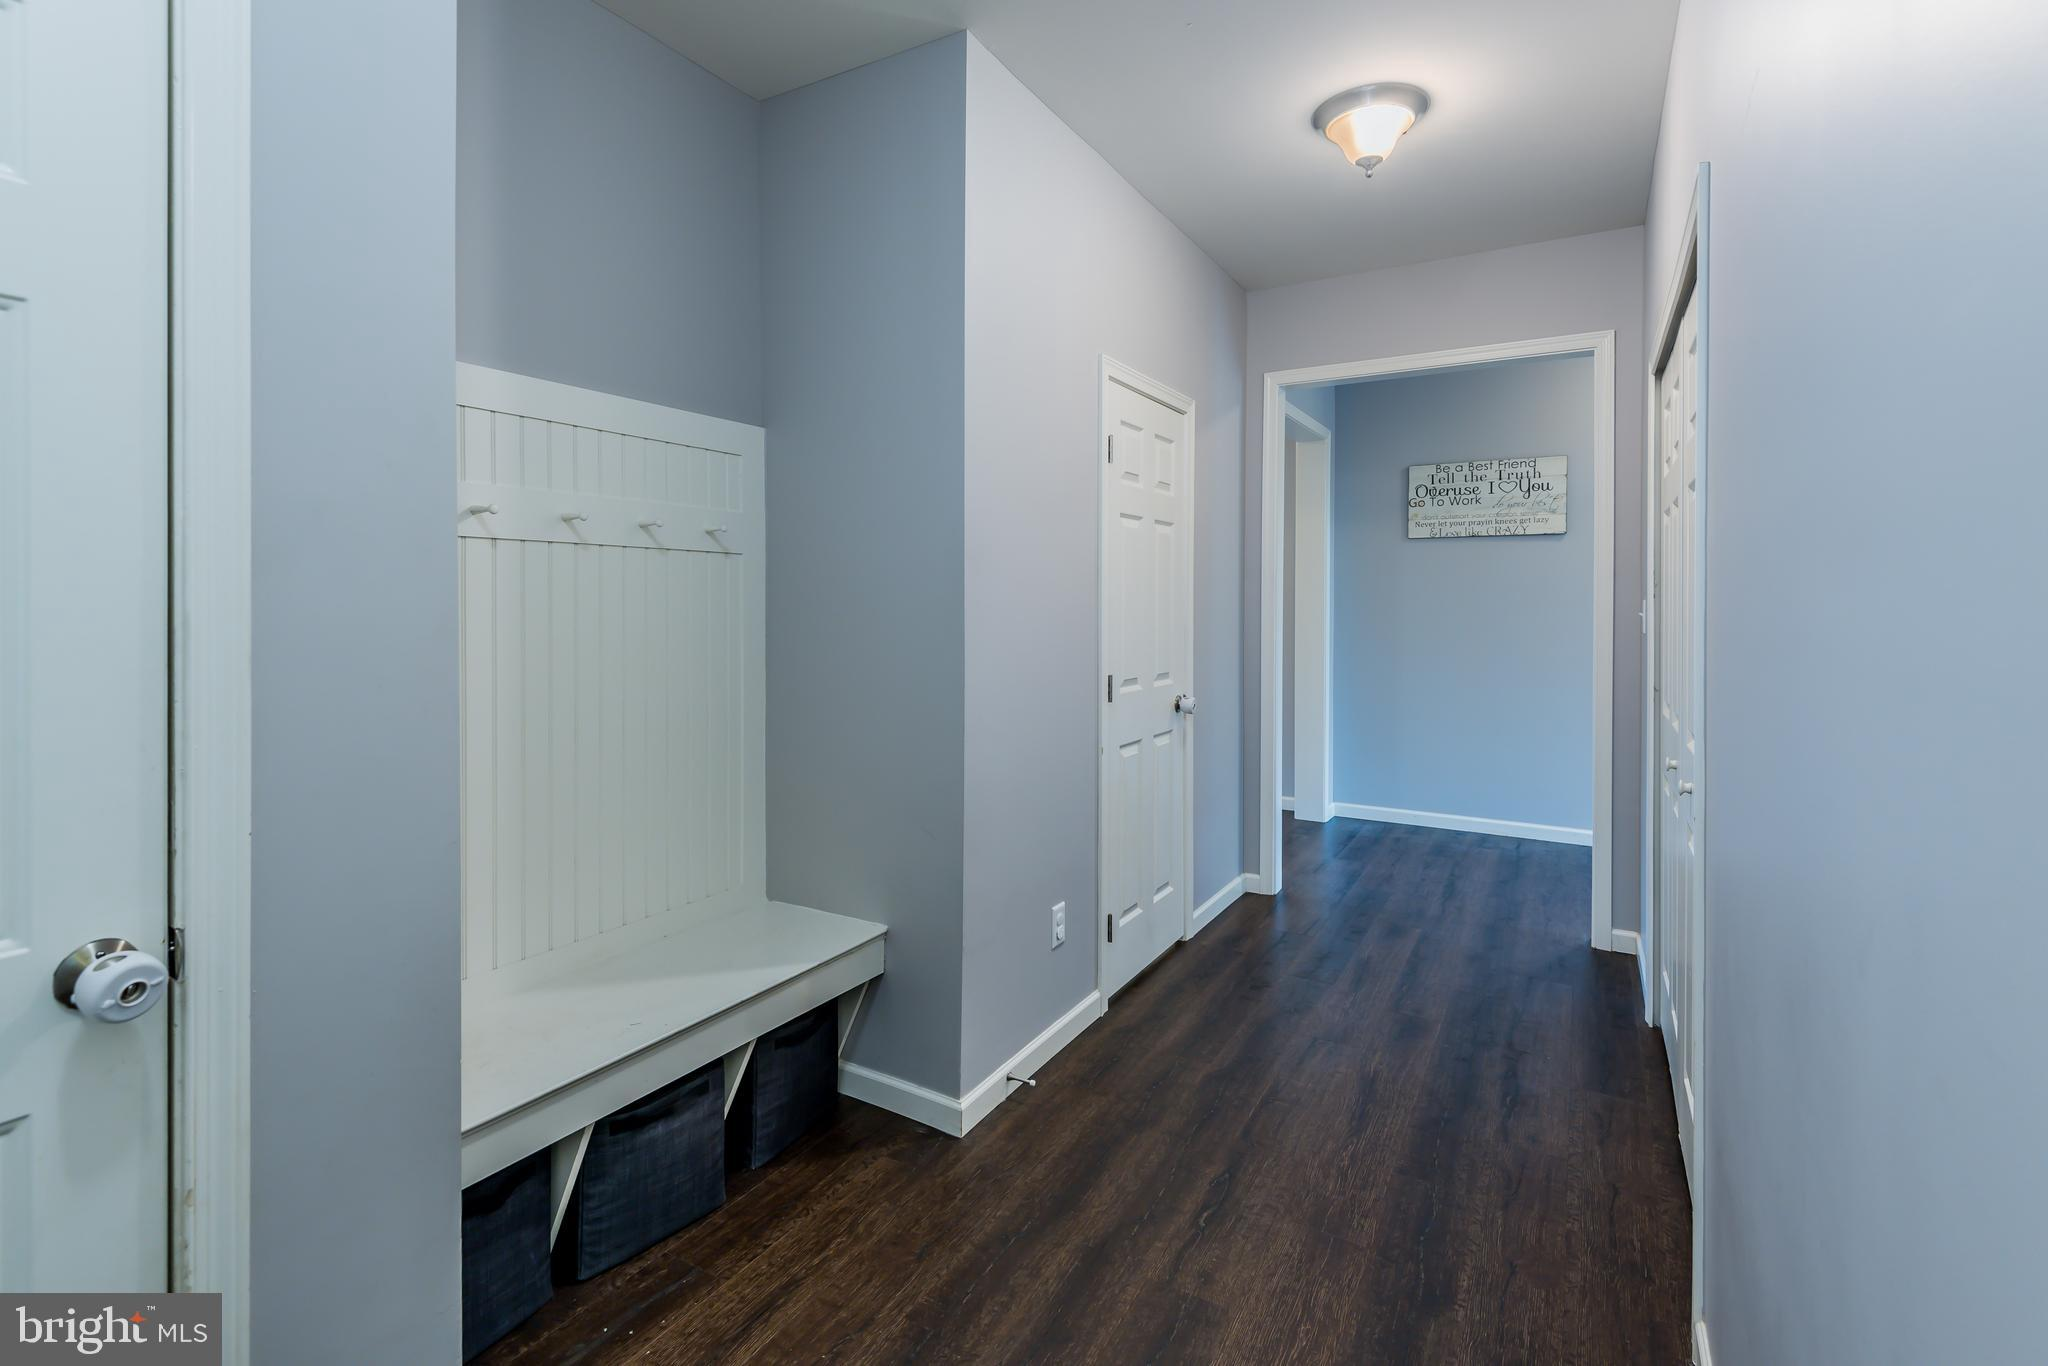 Drop zone by garage entrance and laundry room!